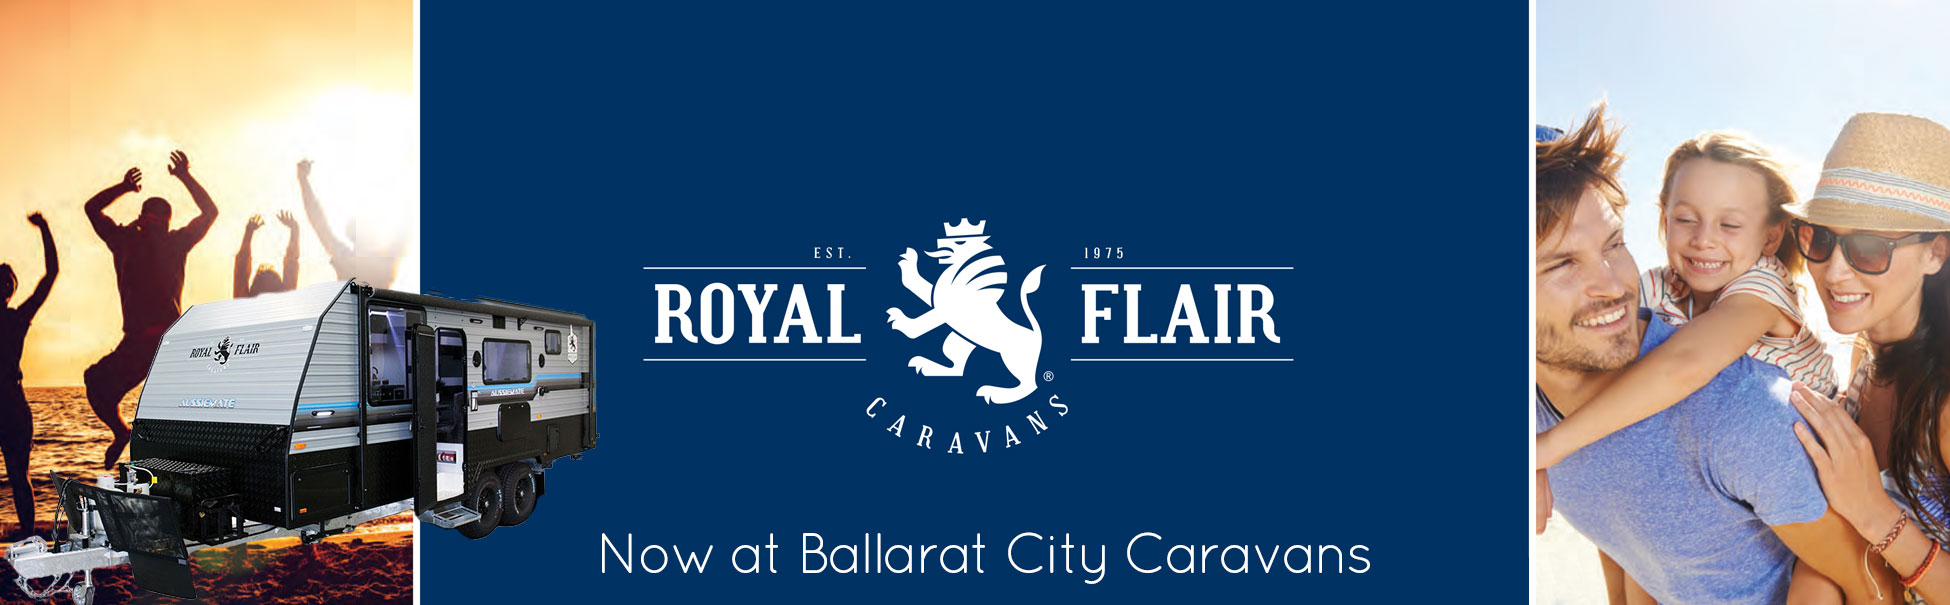 Banner Royal Royal Flair Caravans